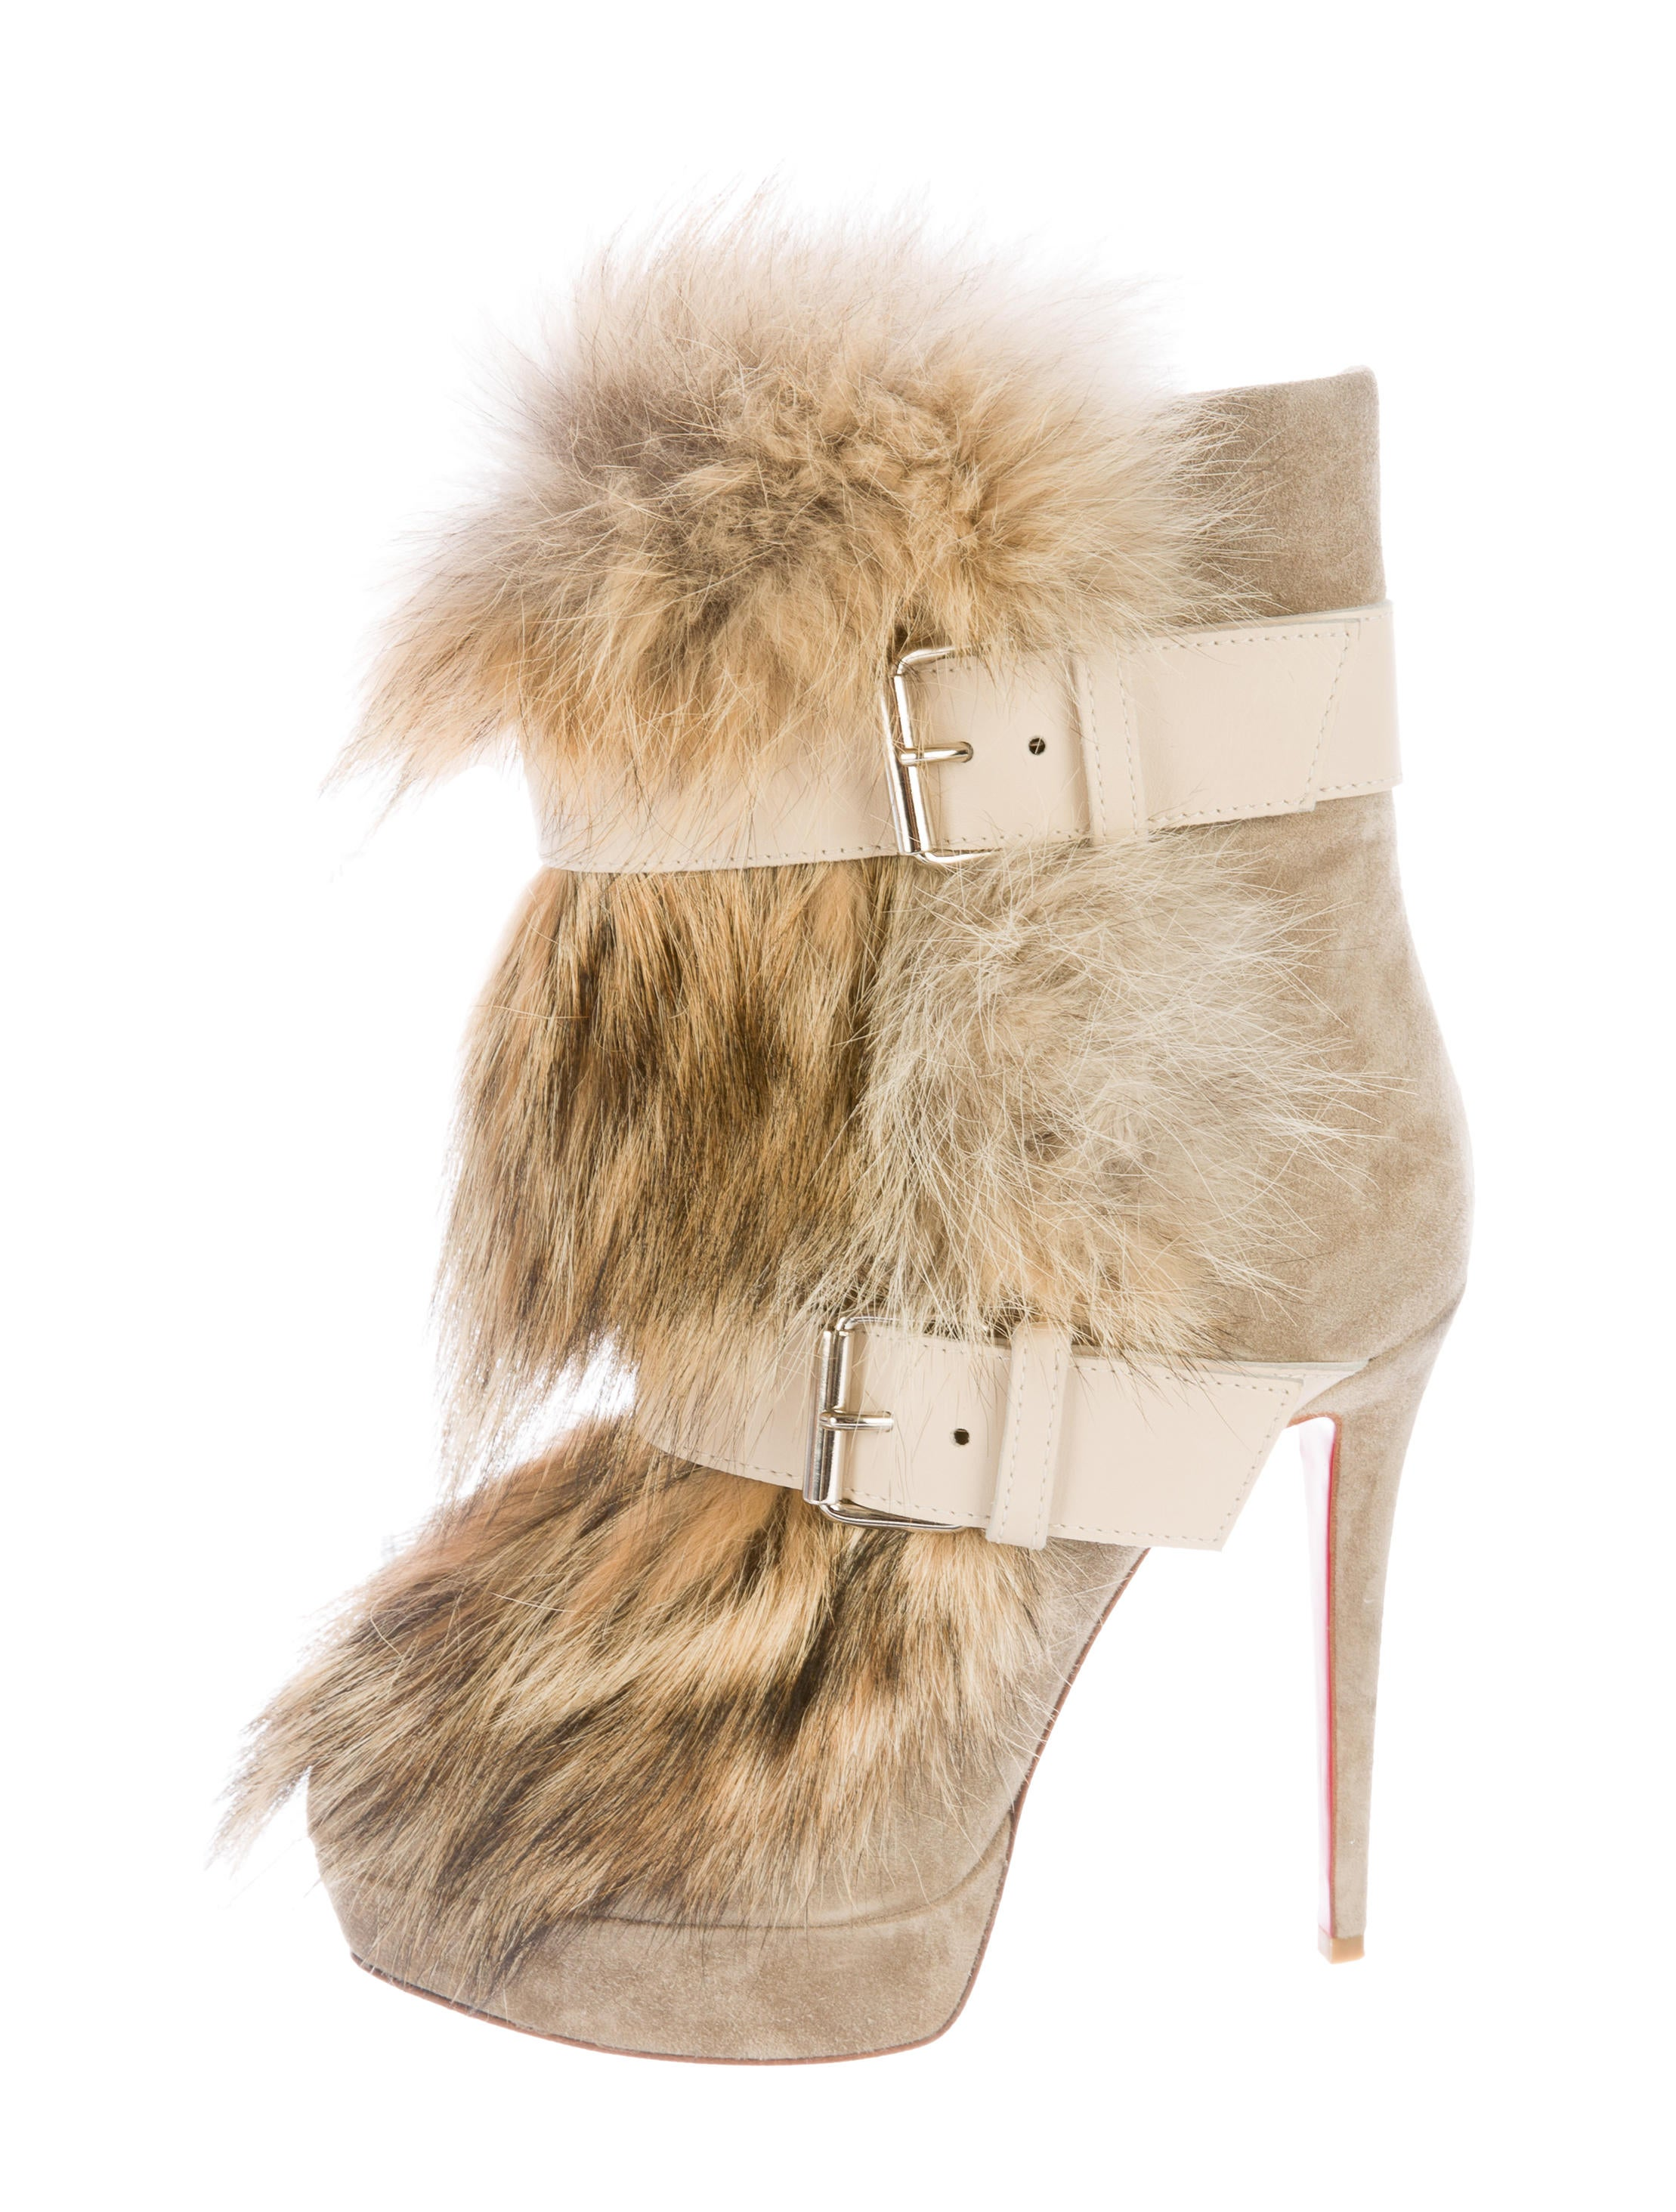 e198ed9df1a8 Christian Louboutin Toundra Fur-Trimmed Ankle Boots - Shoes ...